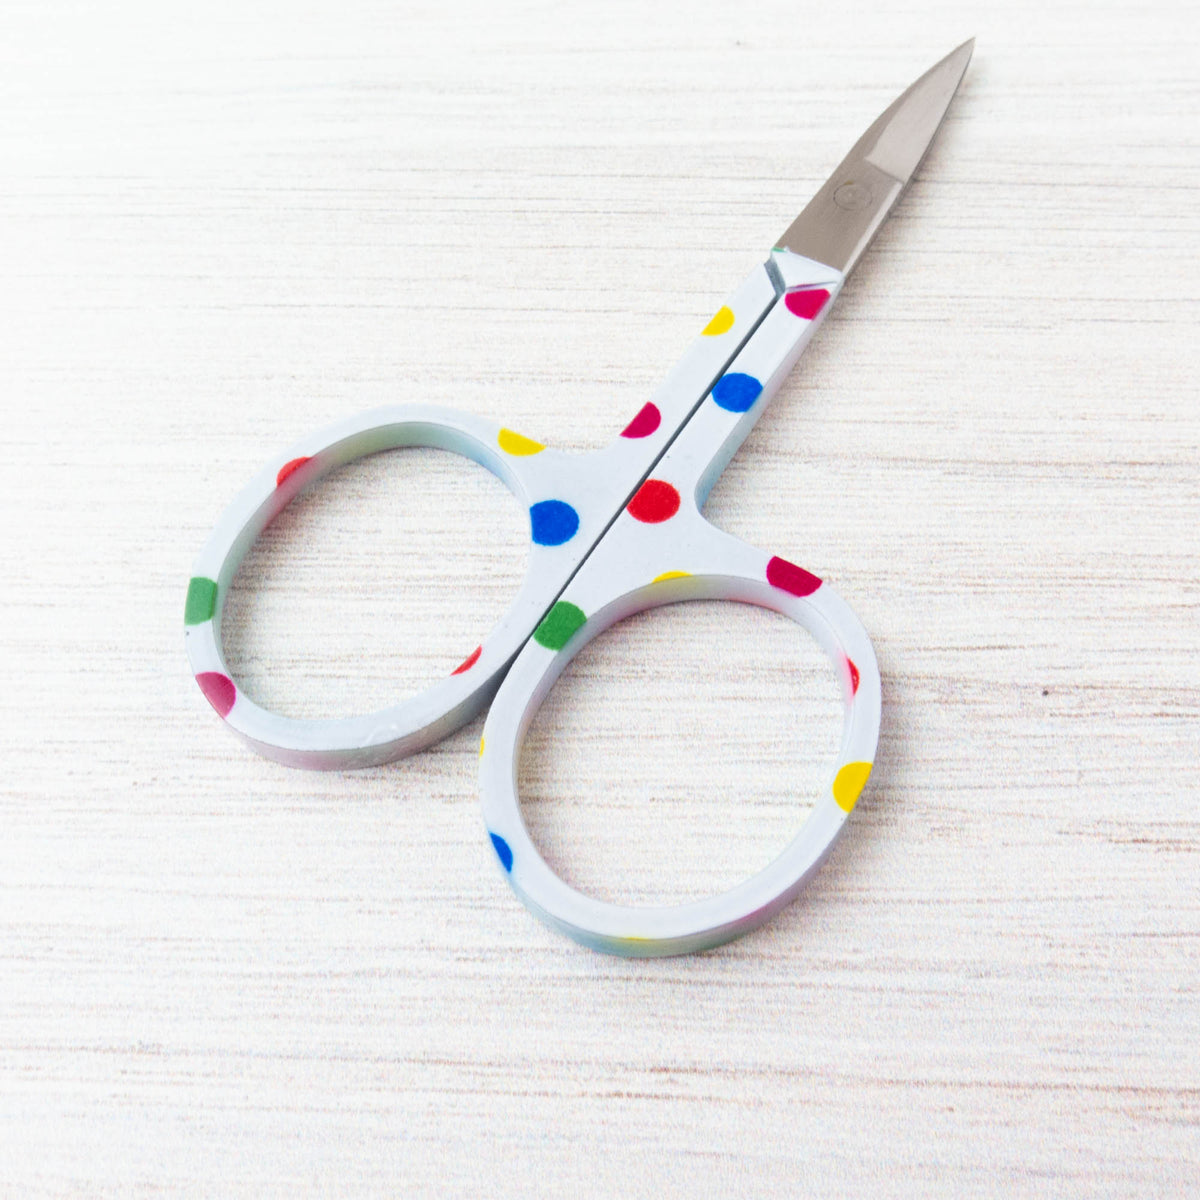 White Rainbow Polka Dot Embroidery Scissors Scissors - Snuggly Monkey